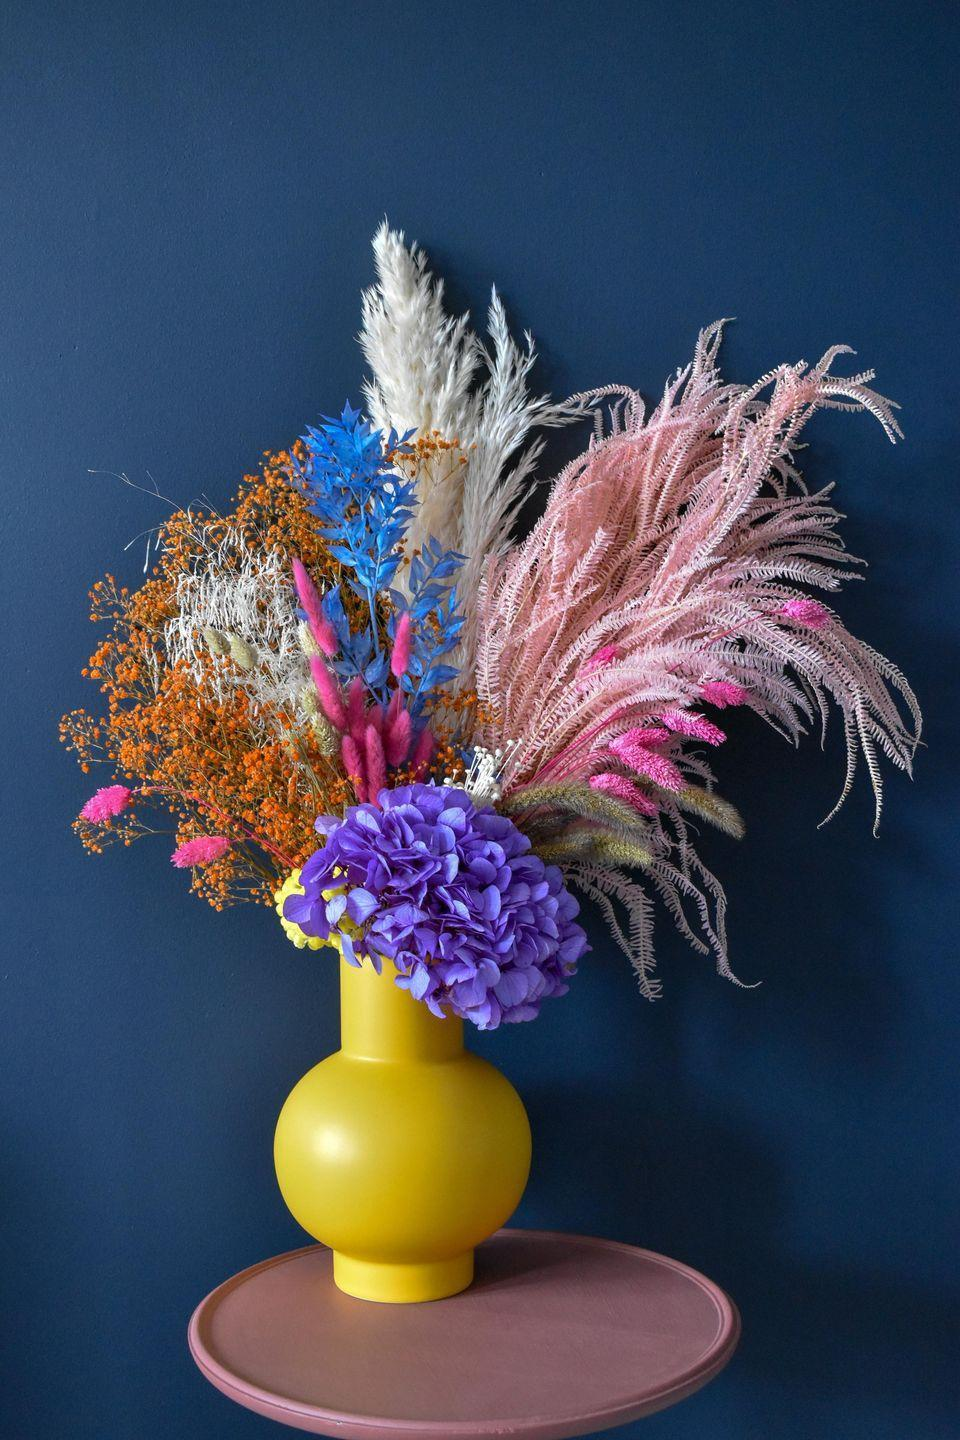 """<p>Dried flowers may conjure up memories of potpourri – but the latest incarnation is very de rigueur. Think pink ornamental grass, coral gypsophila, red eucalyptus and yellow hydrangea – eclectic arrangements in upbeat tones. Preserved using an eco-friendly process, these can be admired for up to one year. From £39, <a href=""""https://www.appreciationproject.co.uk/collections/all-dried-flowers-vases?gclid=EAIaIQobChMIyLvggoKm7wIVB9myCh1Plg6vEAAYASAAEgIX9vD_BwE"""" rel=""""nofollow noopener"""" target=""""_blank"""" data-ylk=""""slk:appreciationproject.co.uk"""" class=""""link rapid-noclick-resp"""">appreciationproject.co.uk</a></p>"""